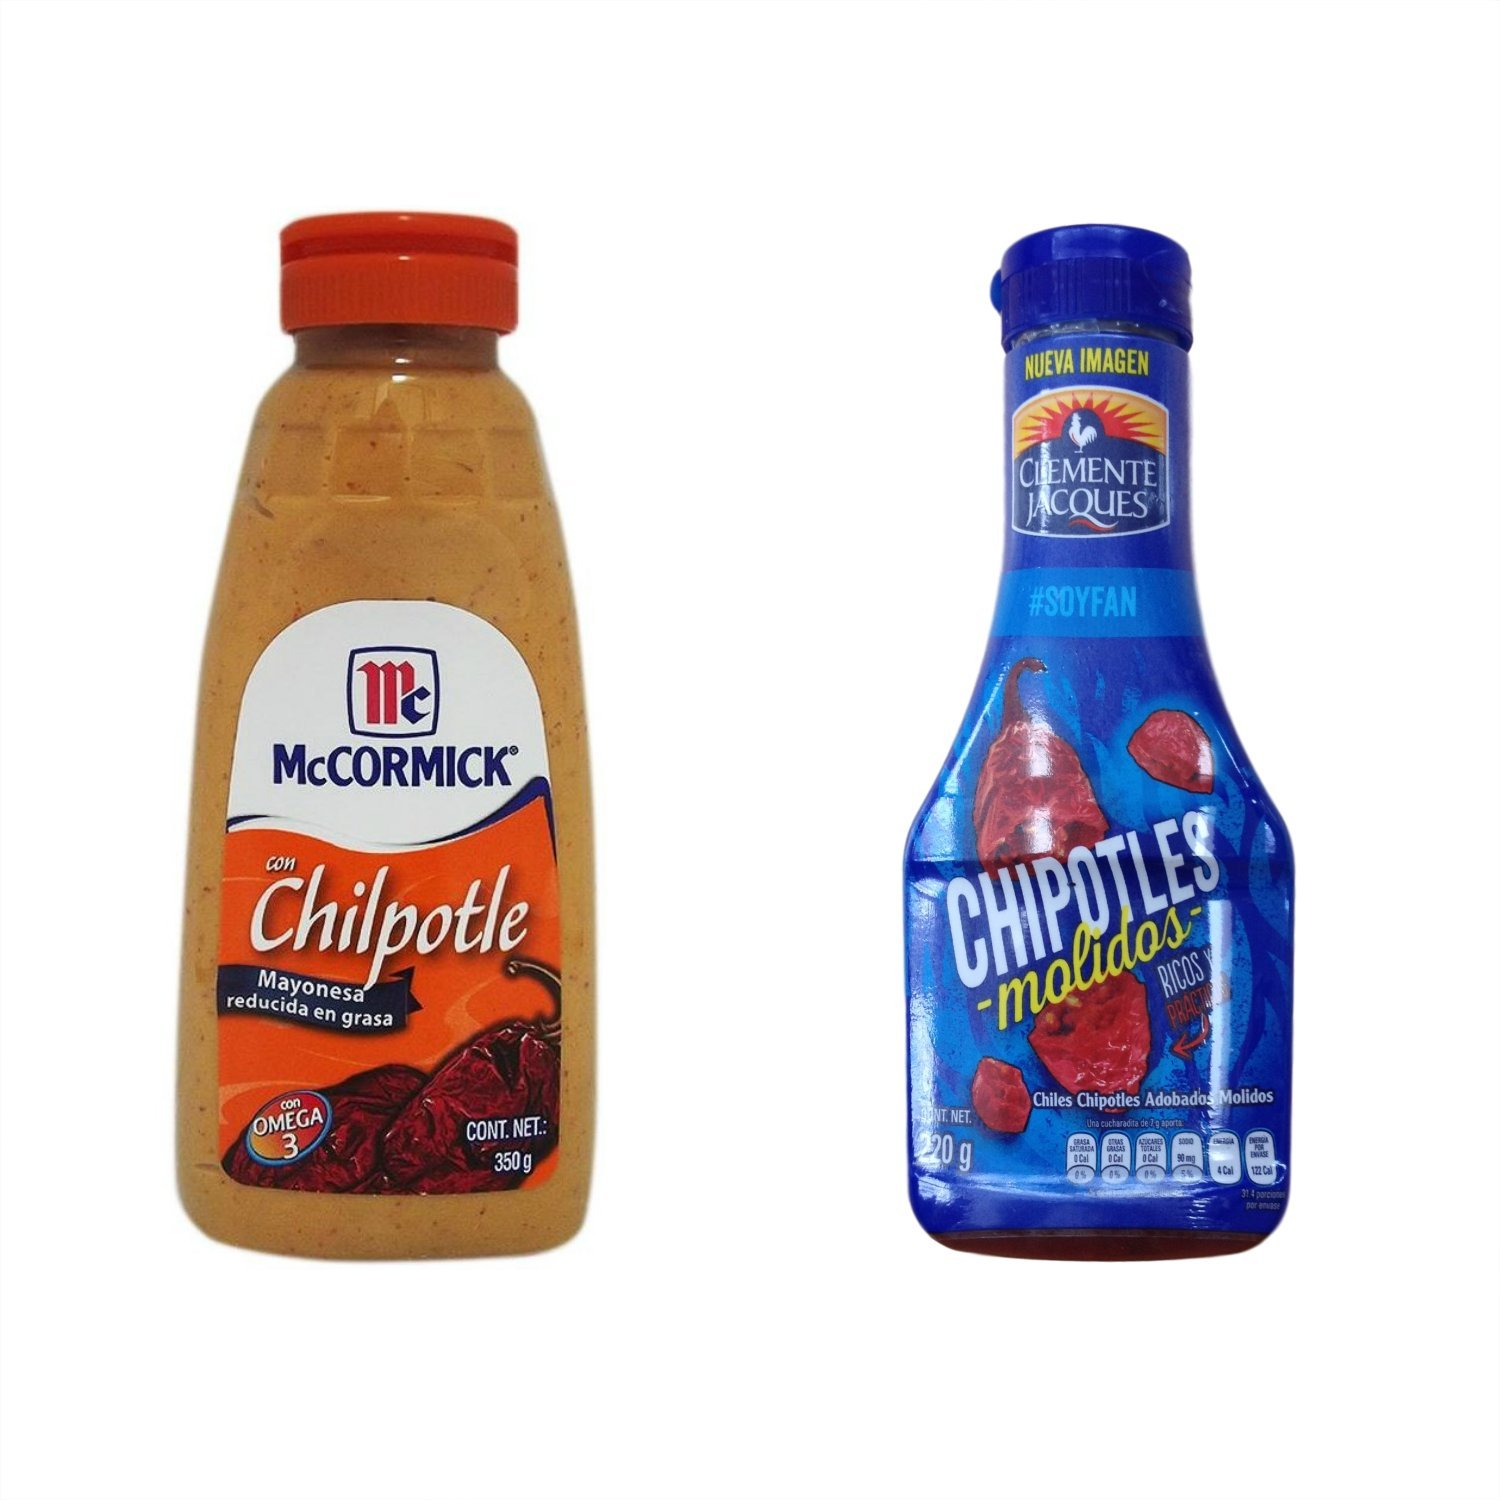 Amazon.com : Mayonnaise with Chipotle Sauce and Chipotles Molidos Clemente Jacques : Grocery & Gourmet Food